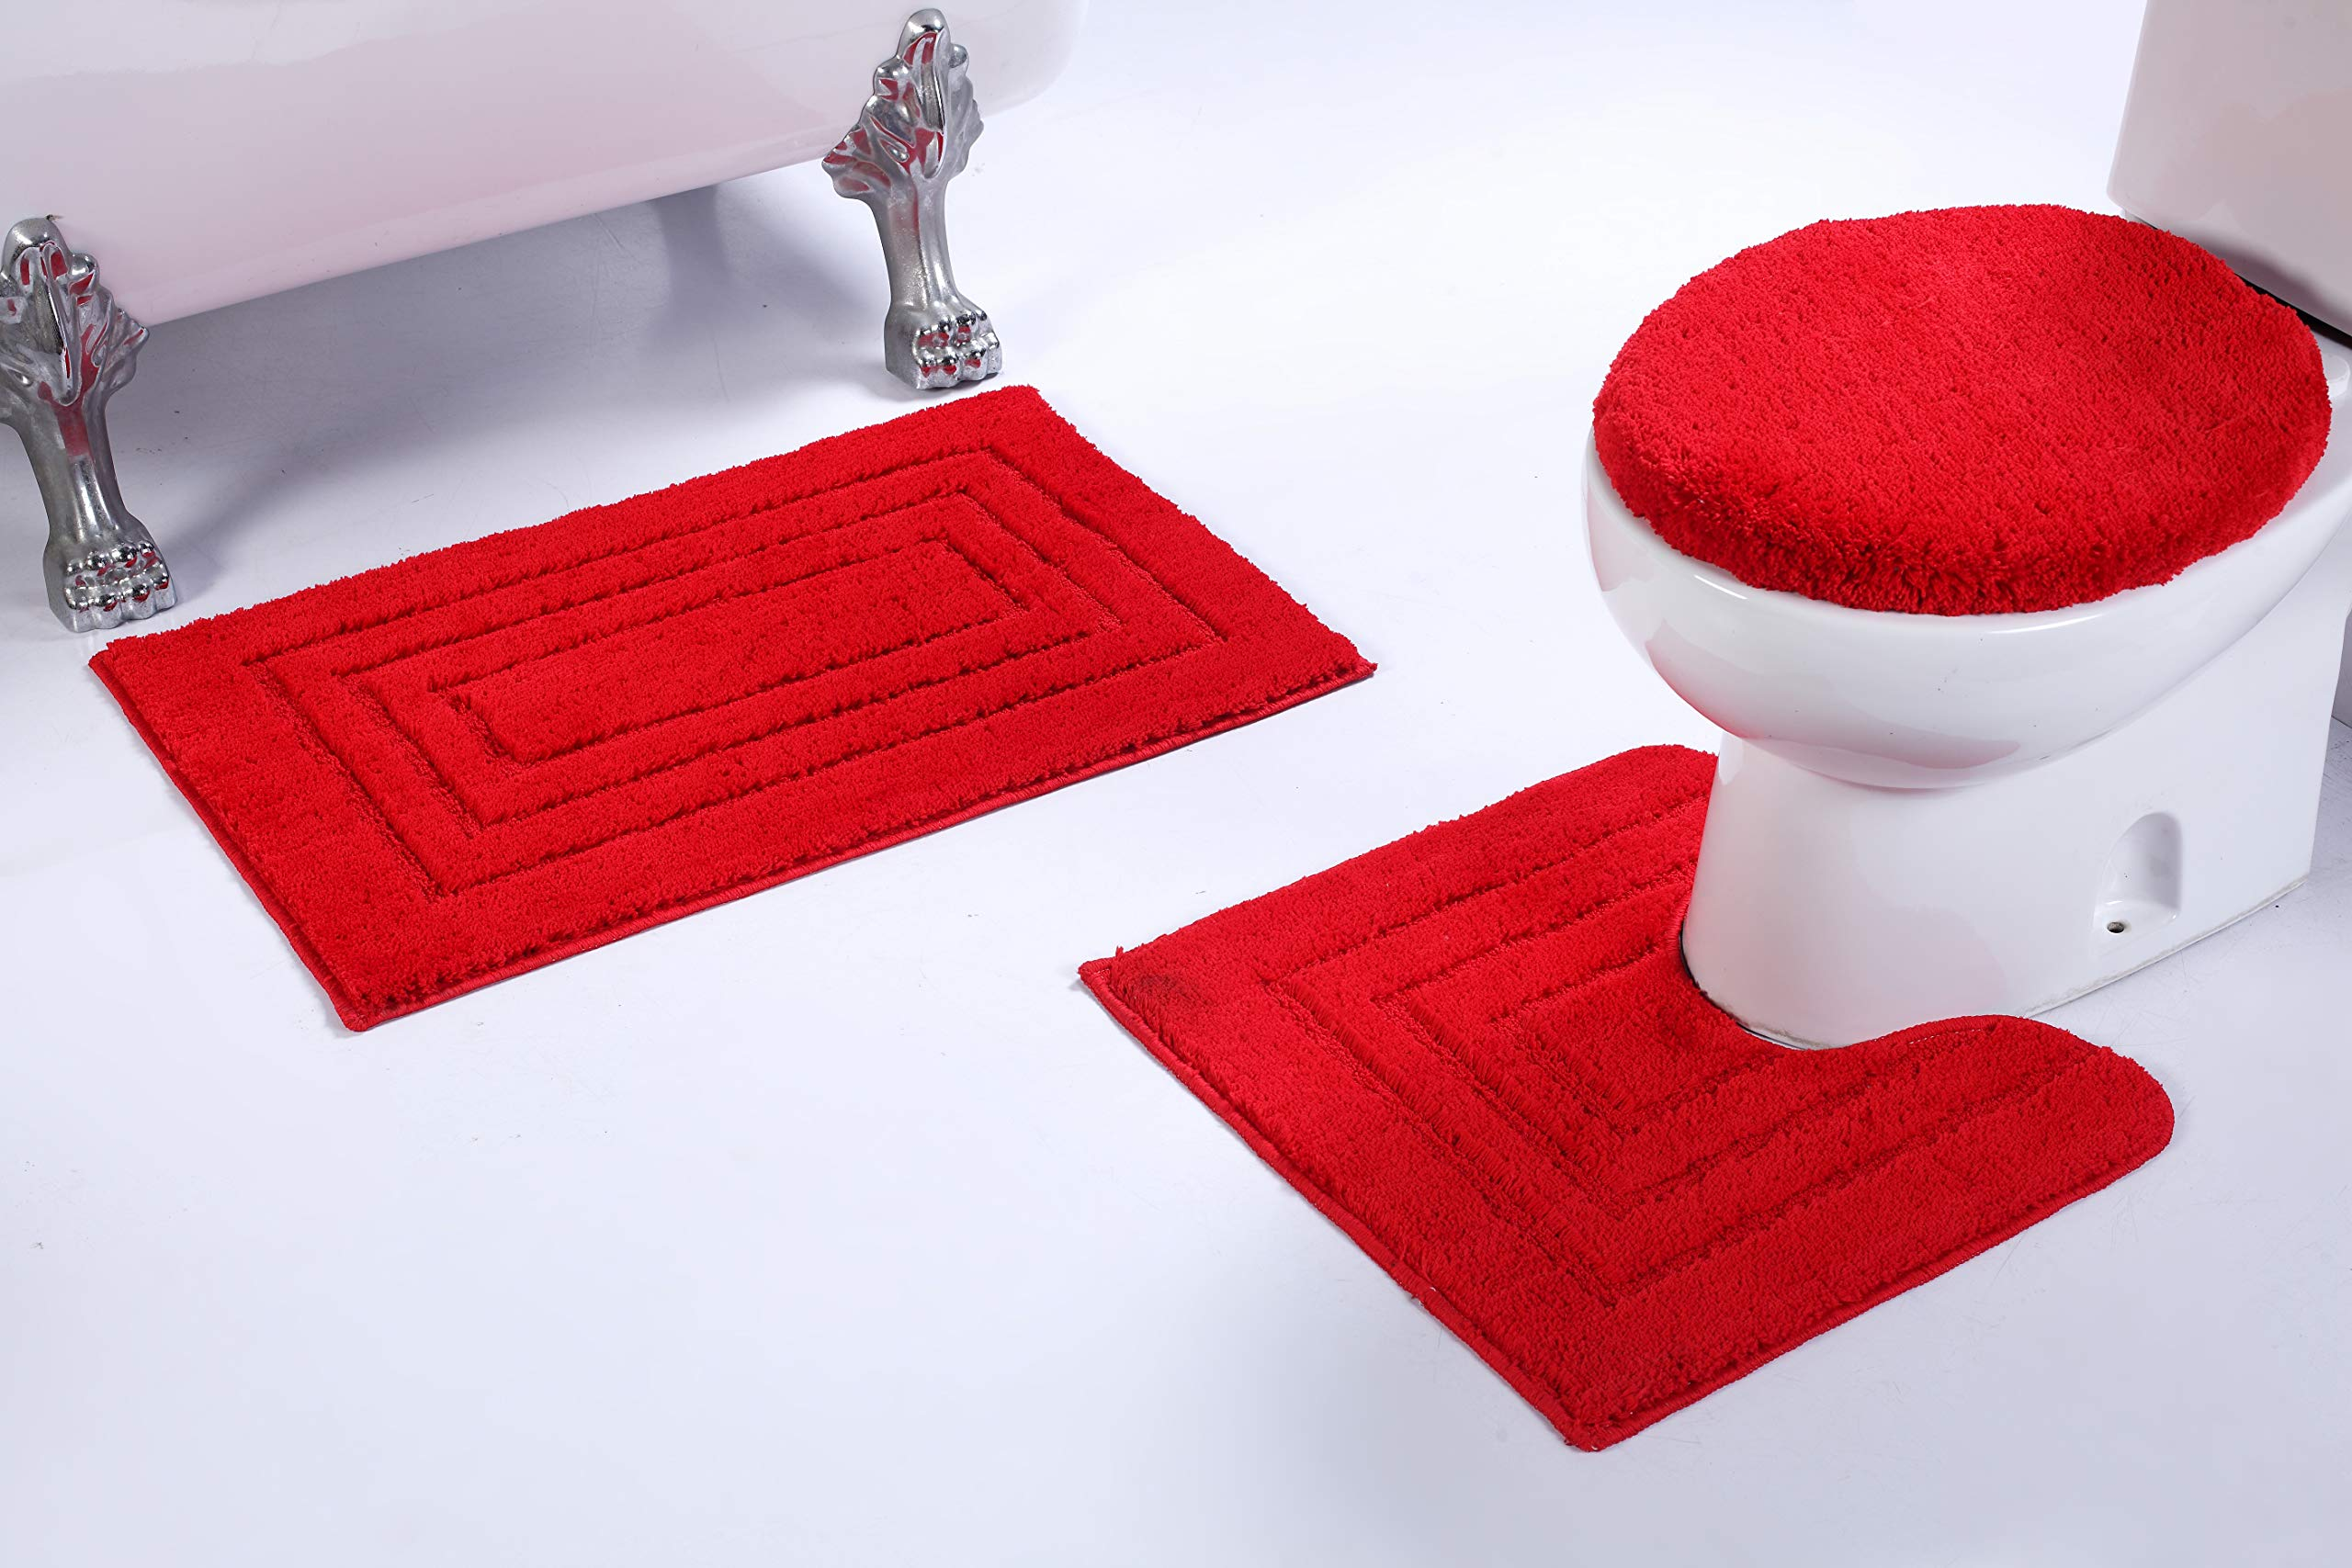 Fancy Linen 3pc Non-Slip Bath Mat Set with Rectangle Pattern Solid Red Bathroom U-Shaped Contour Rug, Mat and Toilet Lid Cover New # Bath 66